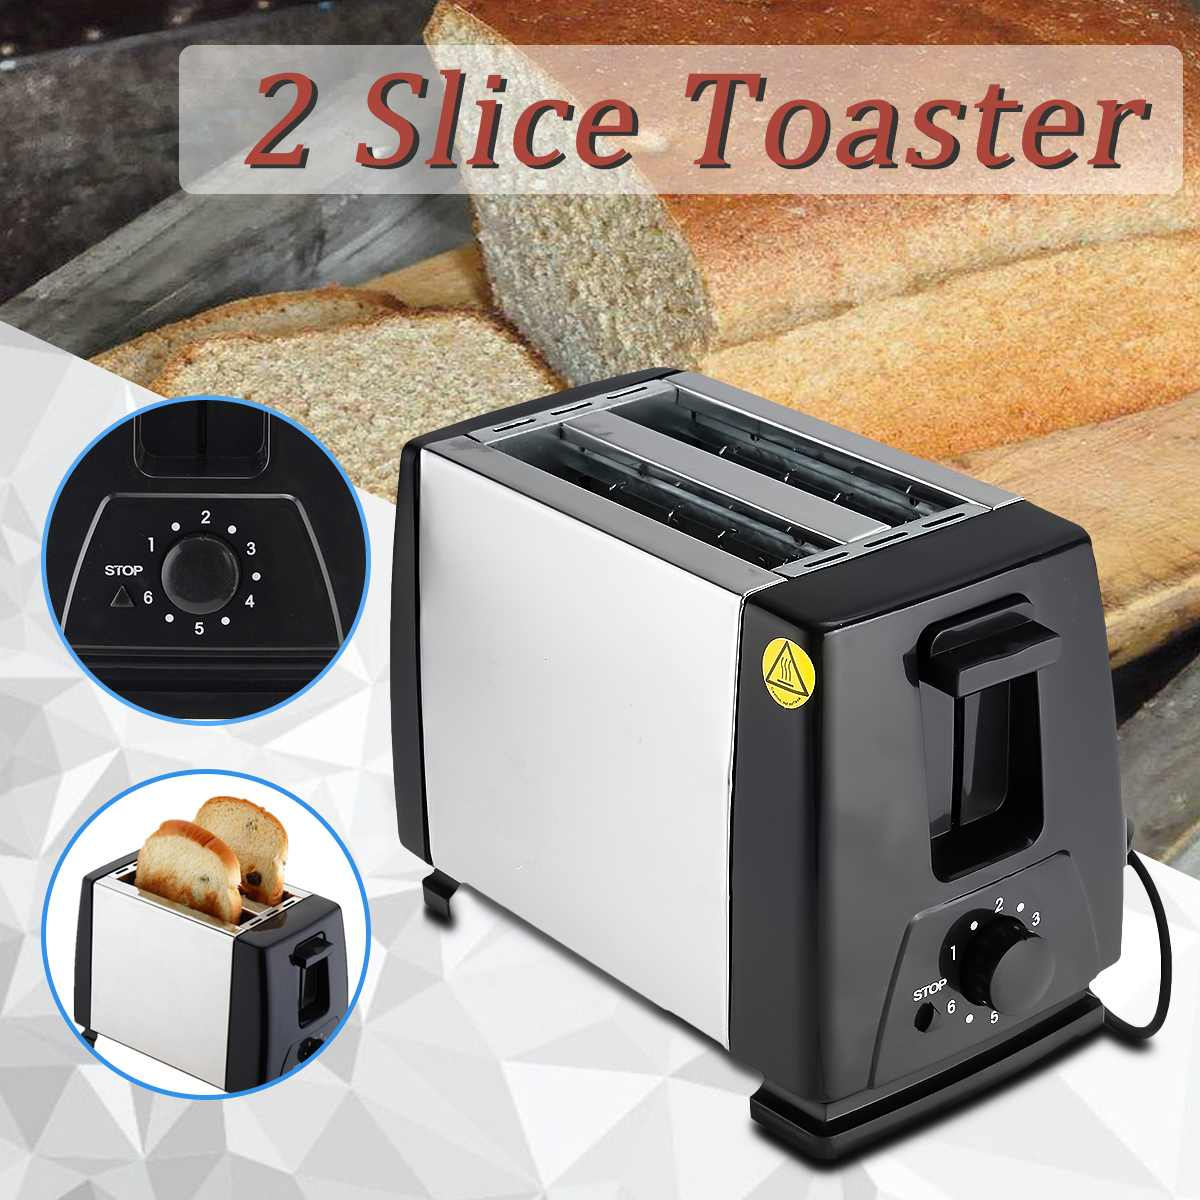 750W 2 Slice Toaster Maker Machine Household Automatic Fast Heating Electronic Bread Toaster Oven Toaster Sandwich Maker Grill